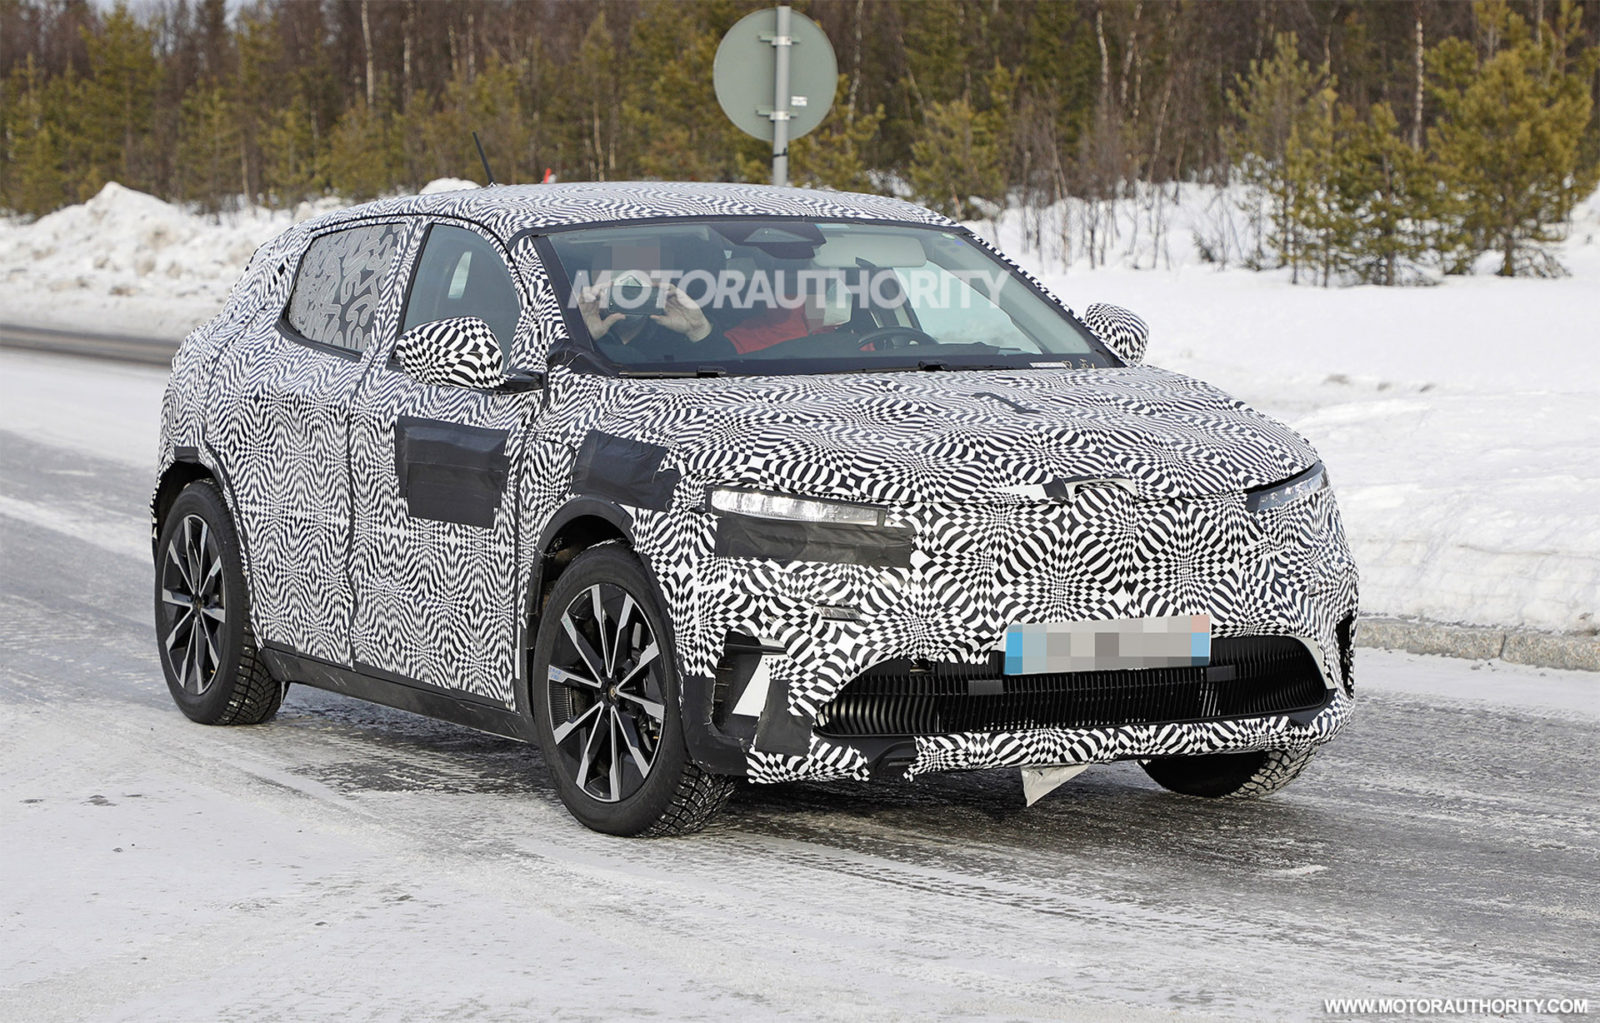 2022-renault-megane-e-tech-electric-spy-shots:-nissan-ariya's-french-cousin-due-in-2022